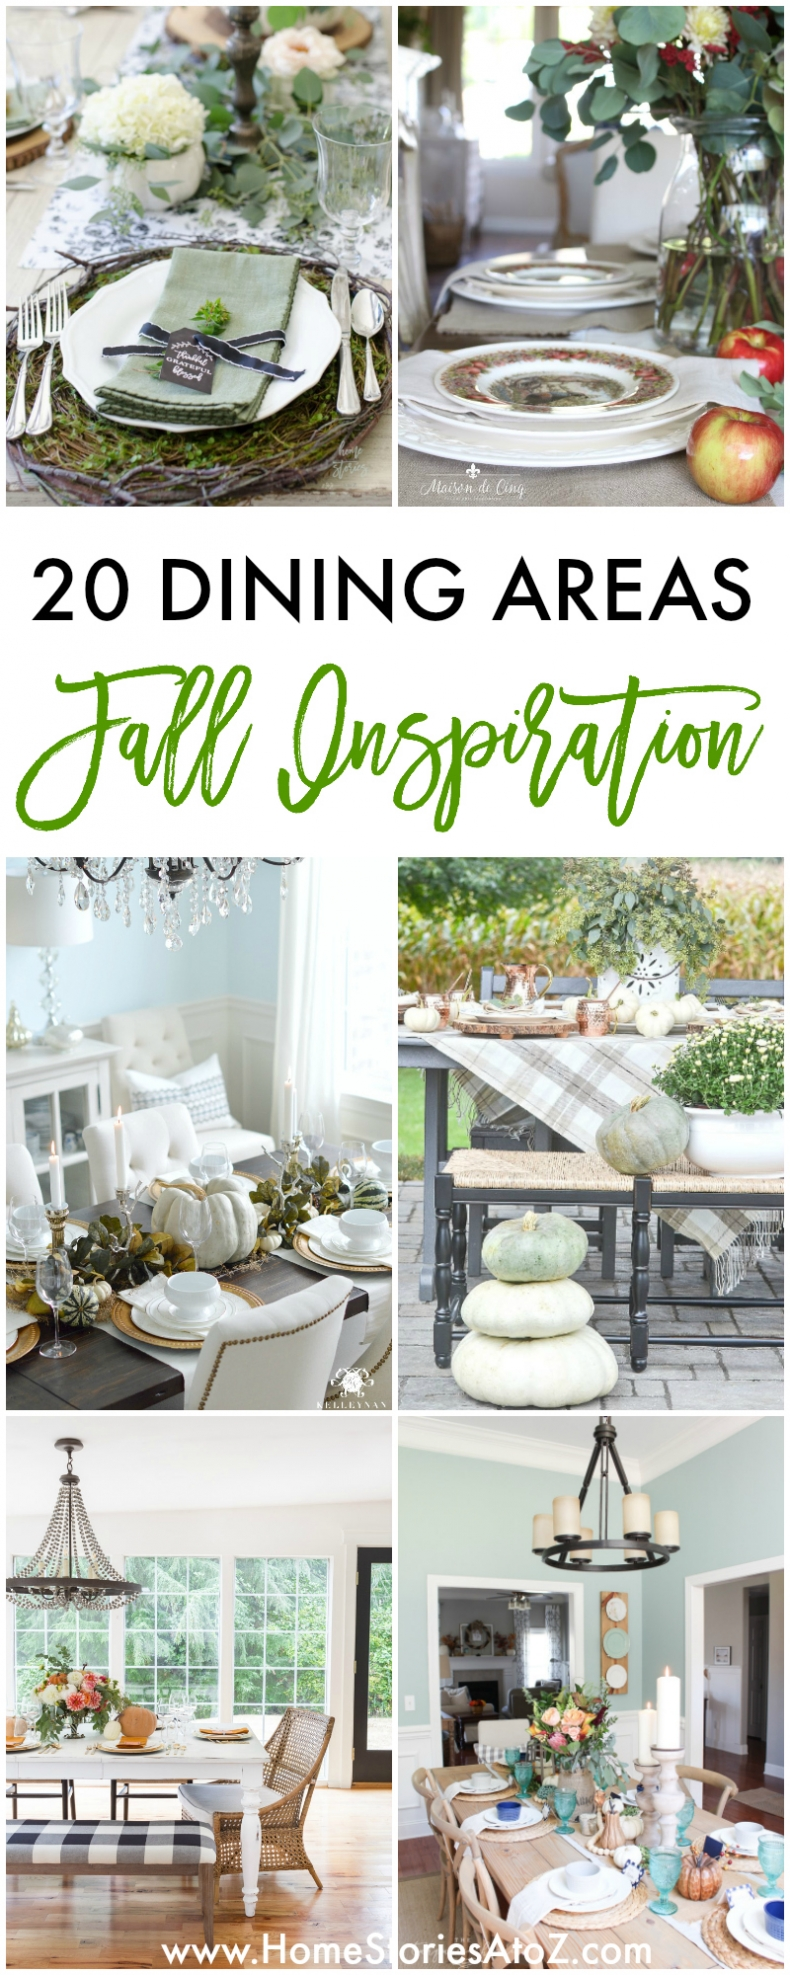 20 Dining Areas for Fall - Home Stories A to Z